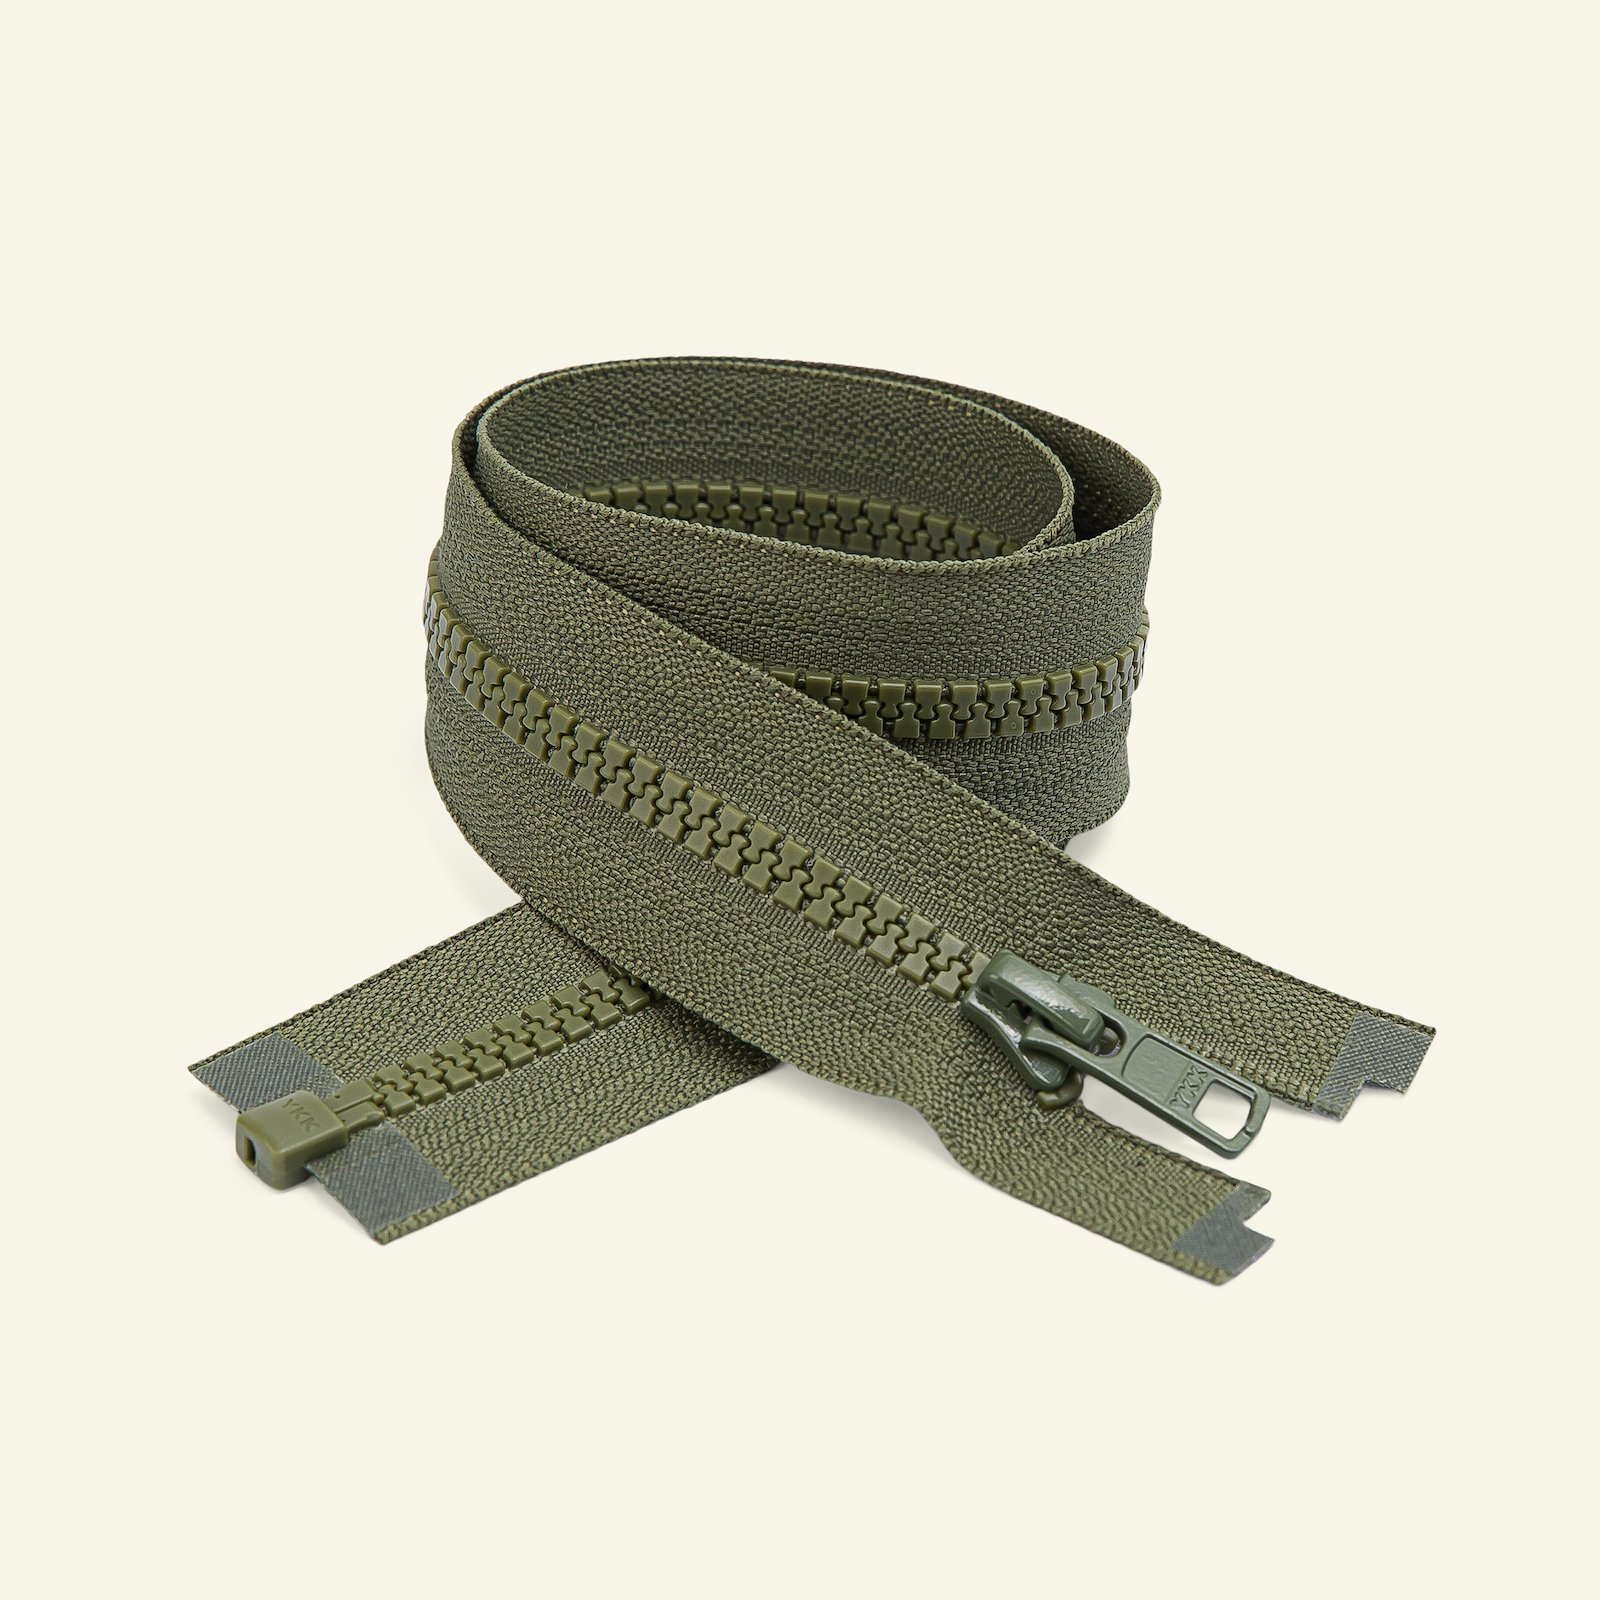 YKK zip 6mm open end 80cm army x50033_pack